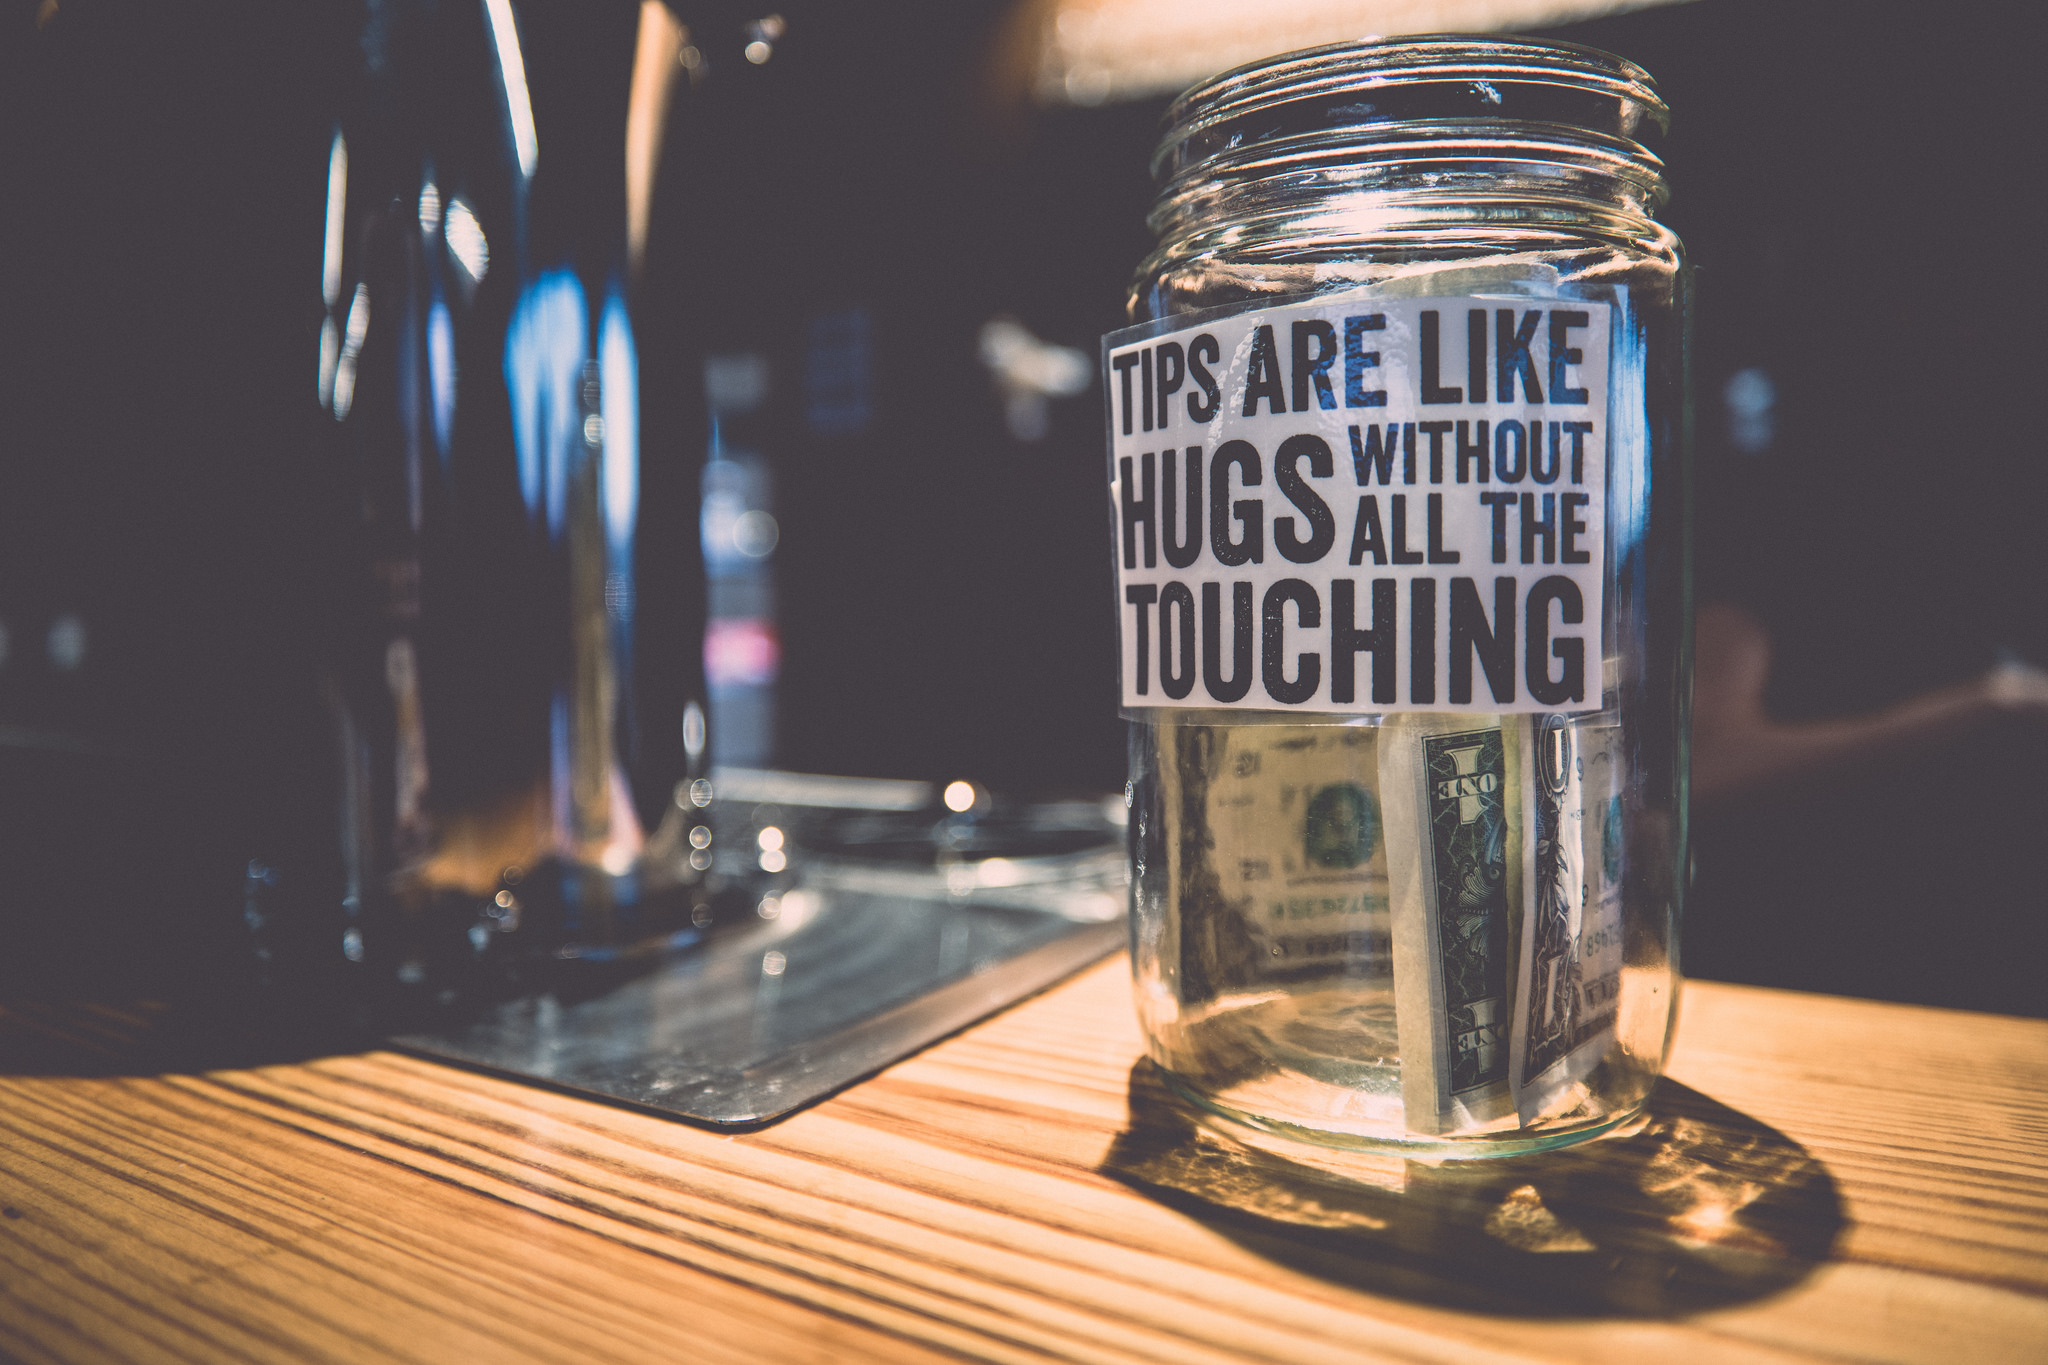 """Tips are like hugs"""